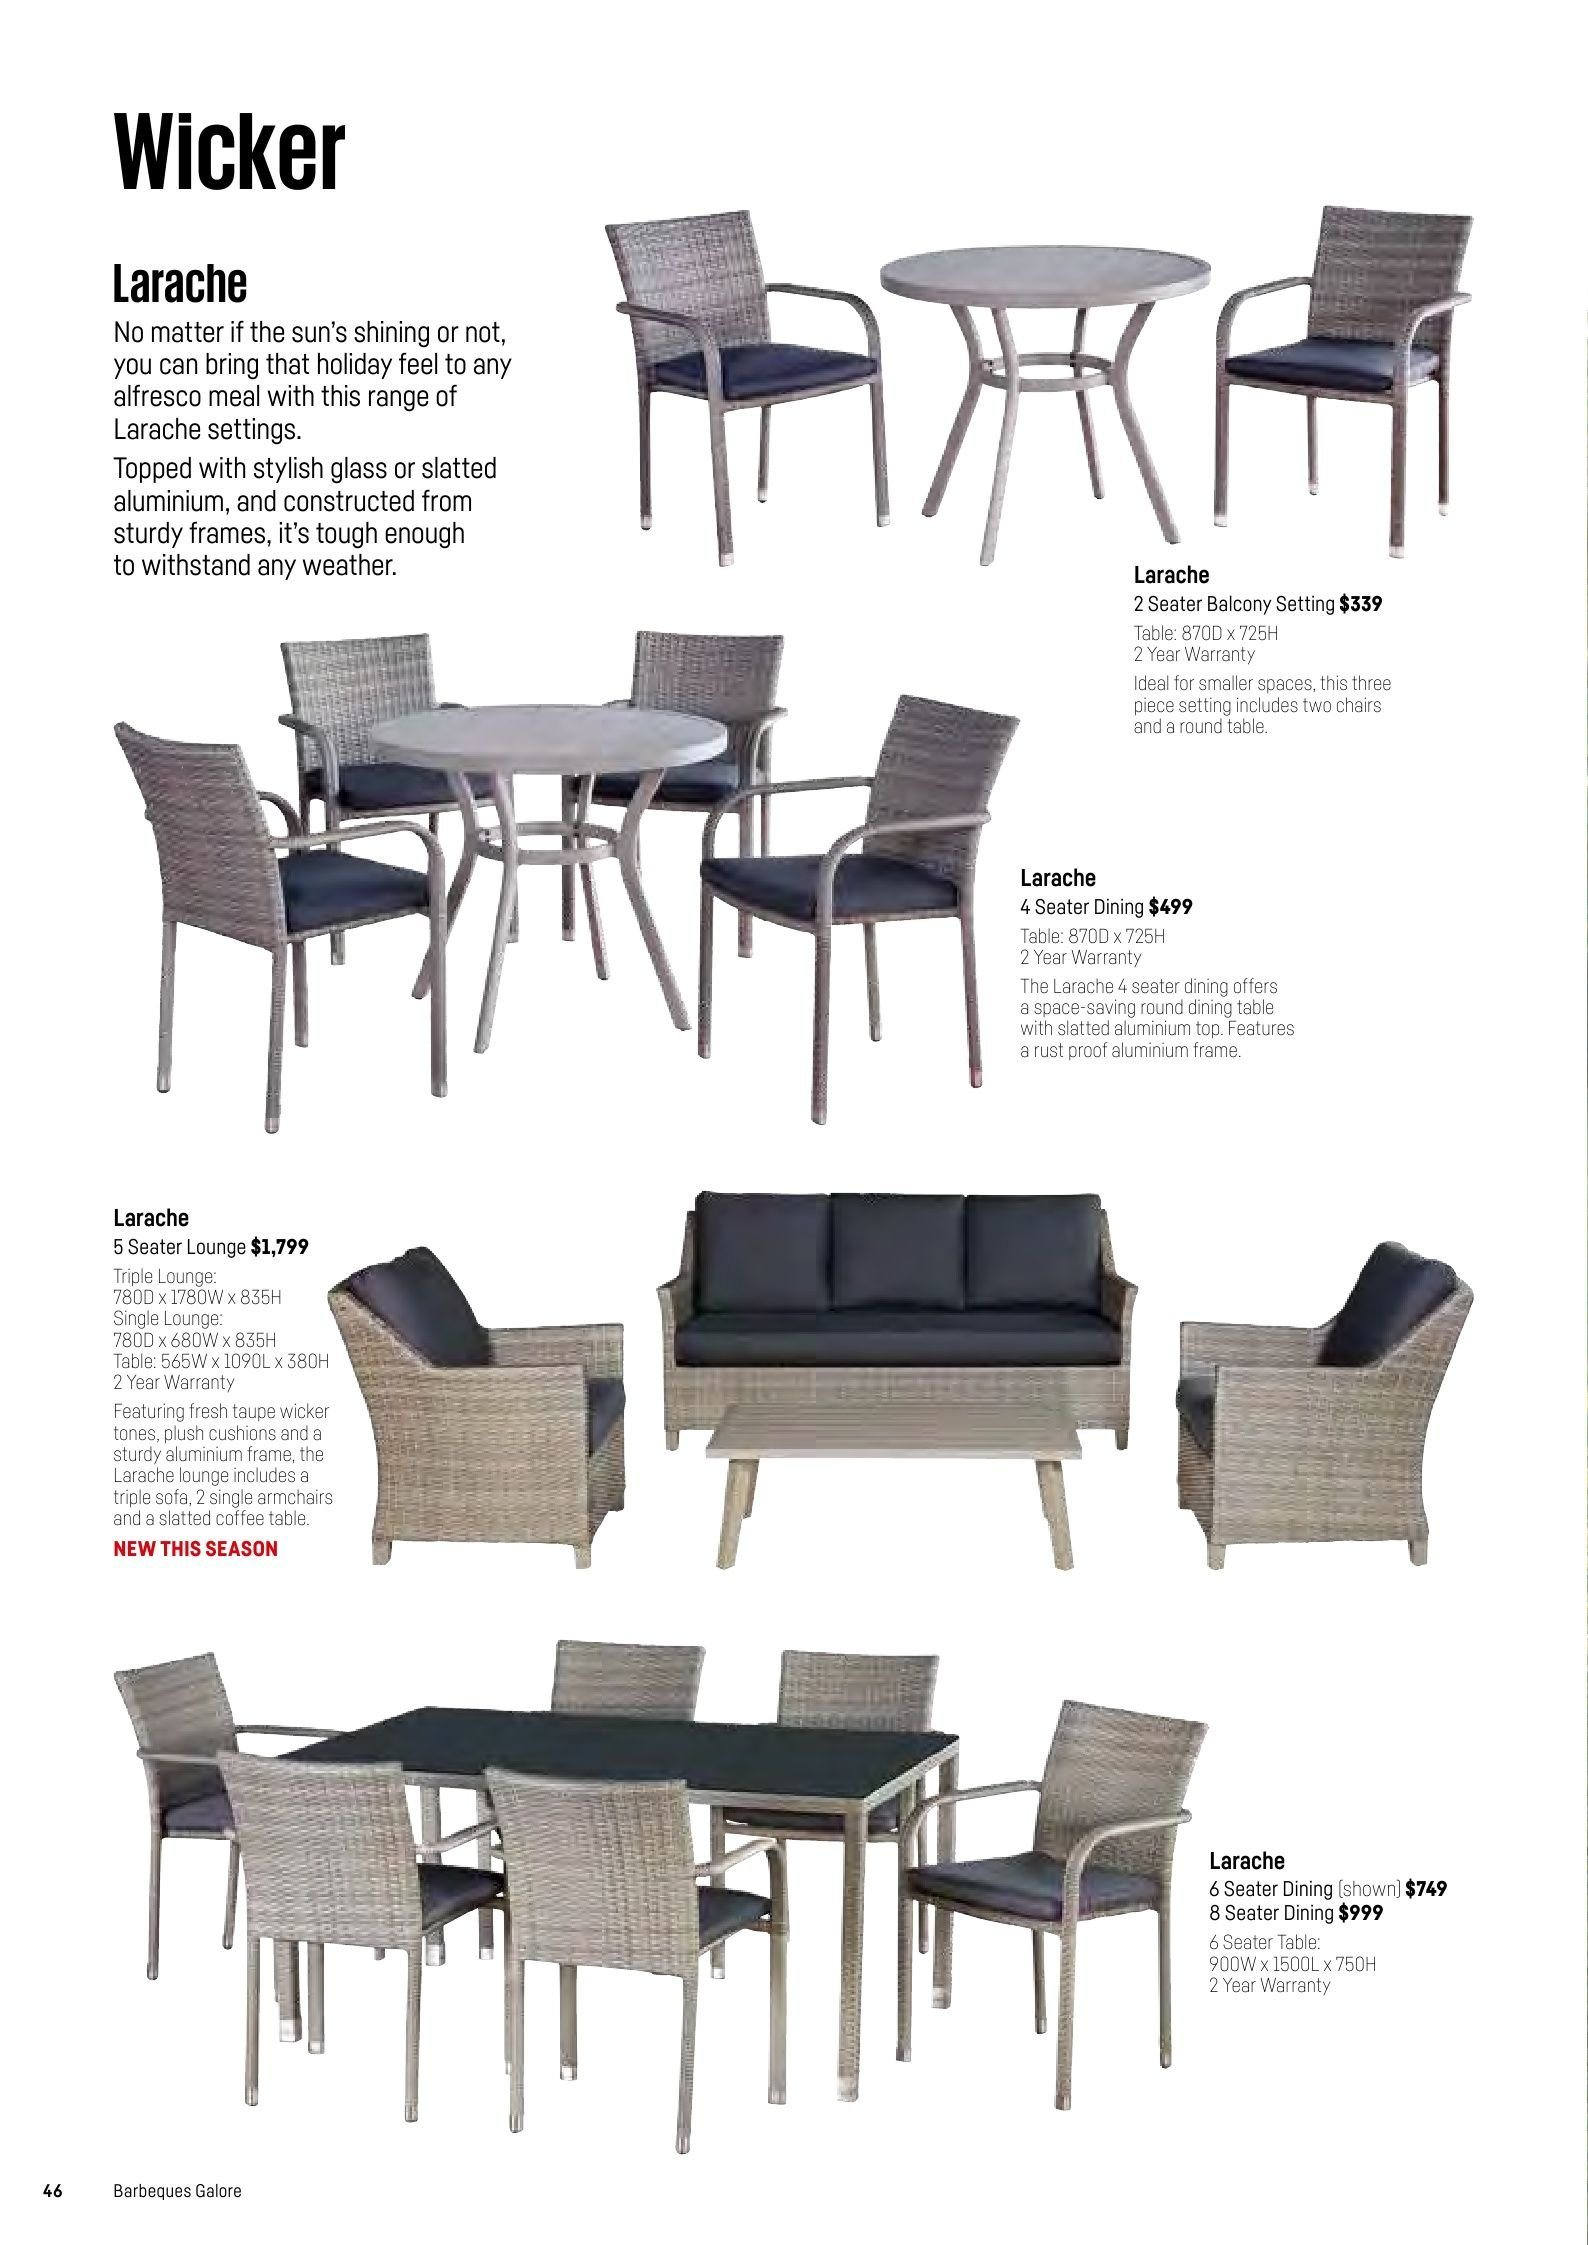 Barbeques galore catalogue sales products coffee coffee table dining table sofa